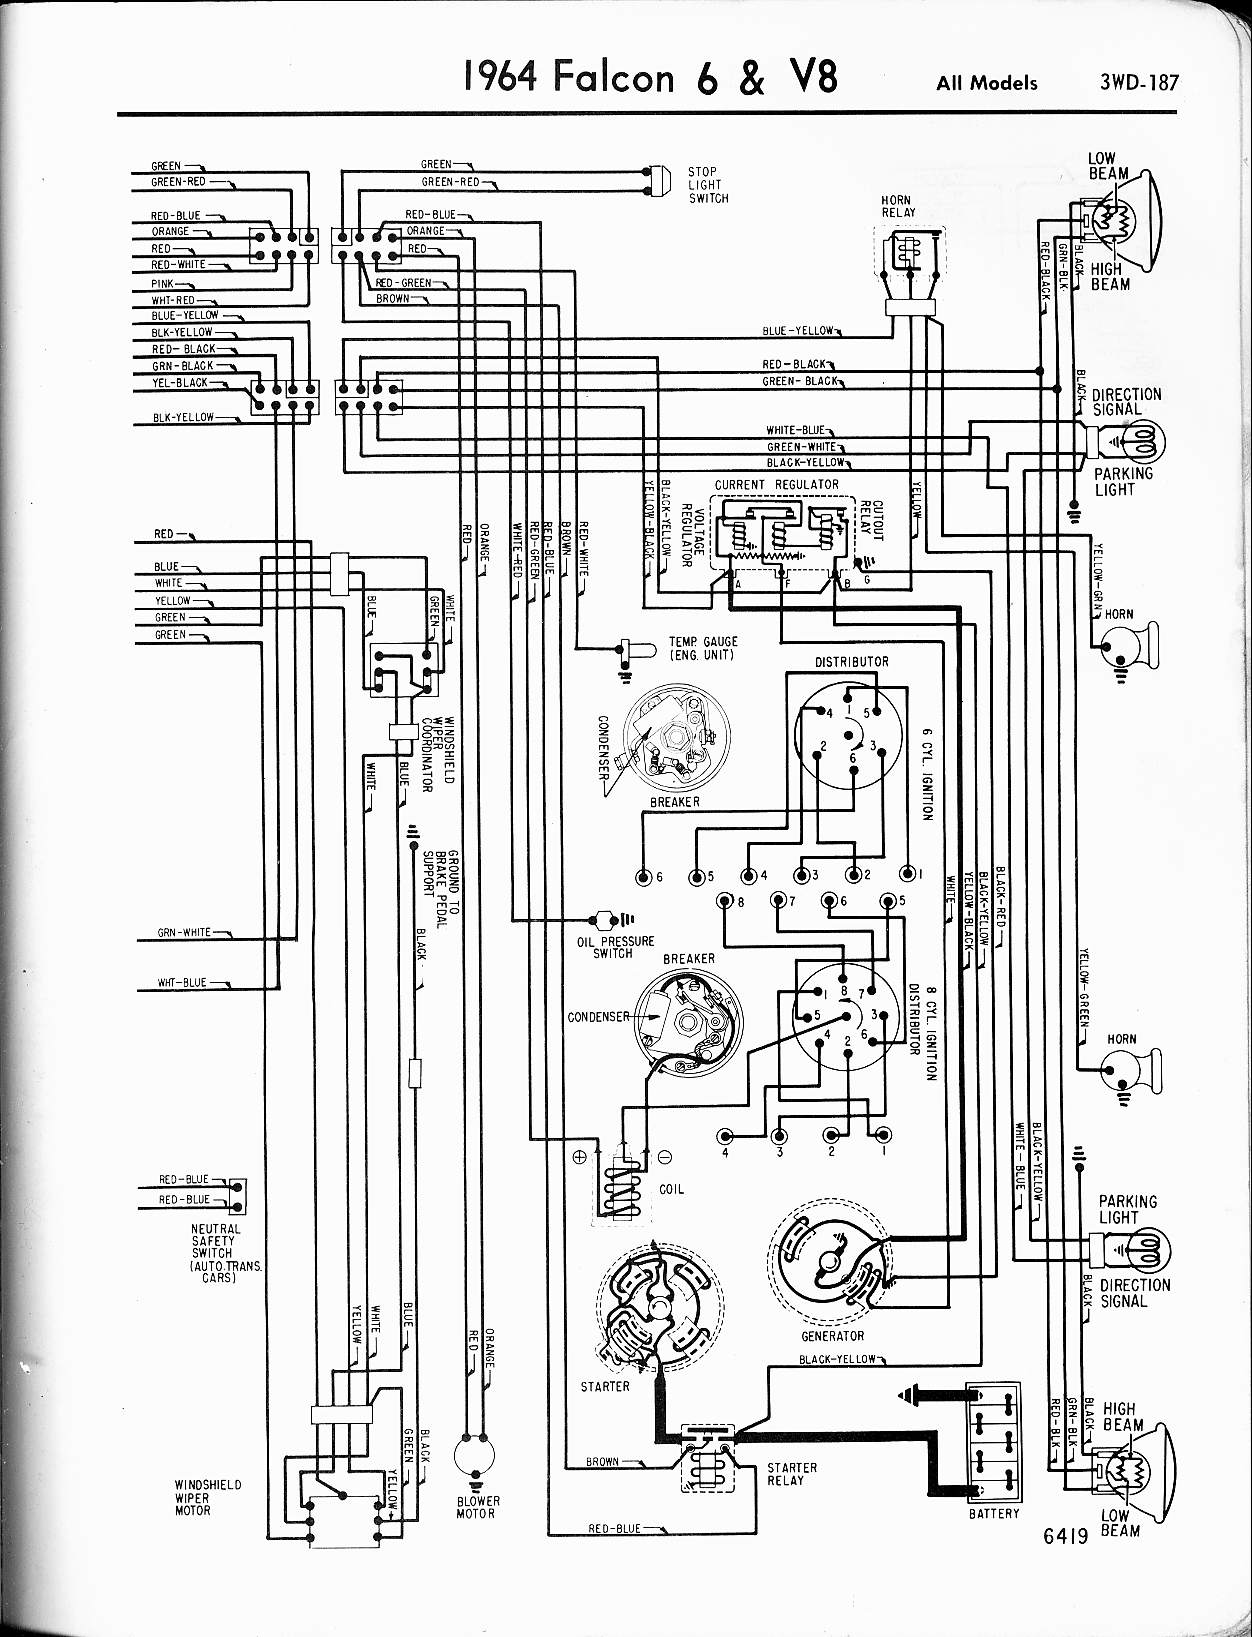 MWire5765 187 1964 falcon wiring help needed ford muscle forums ford 63 falcon wiring diagram at gsmx.co